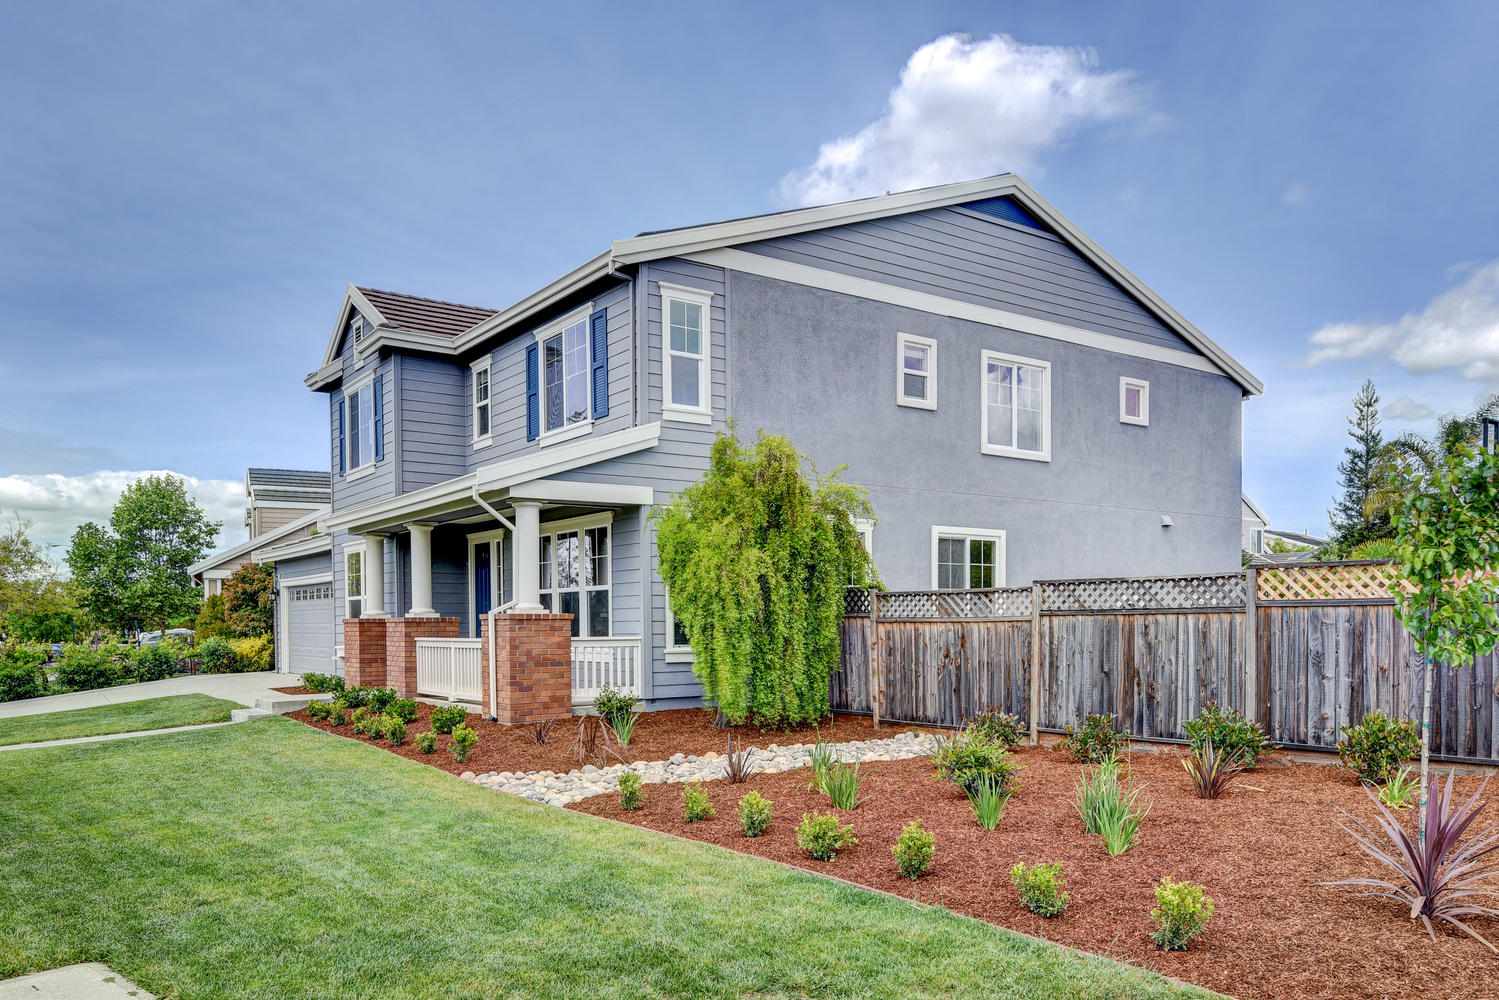 2896 Siena Rd Livermore CA-large-002-15-Front-1500×1000-72dpi